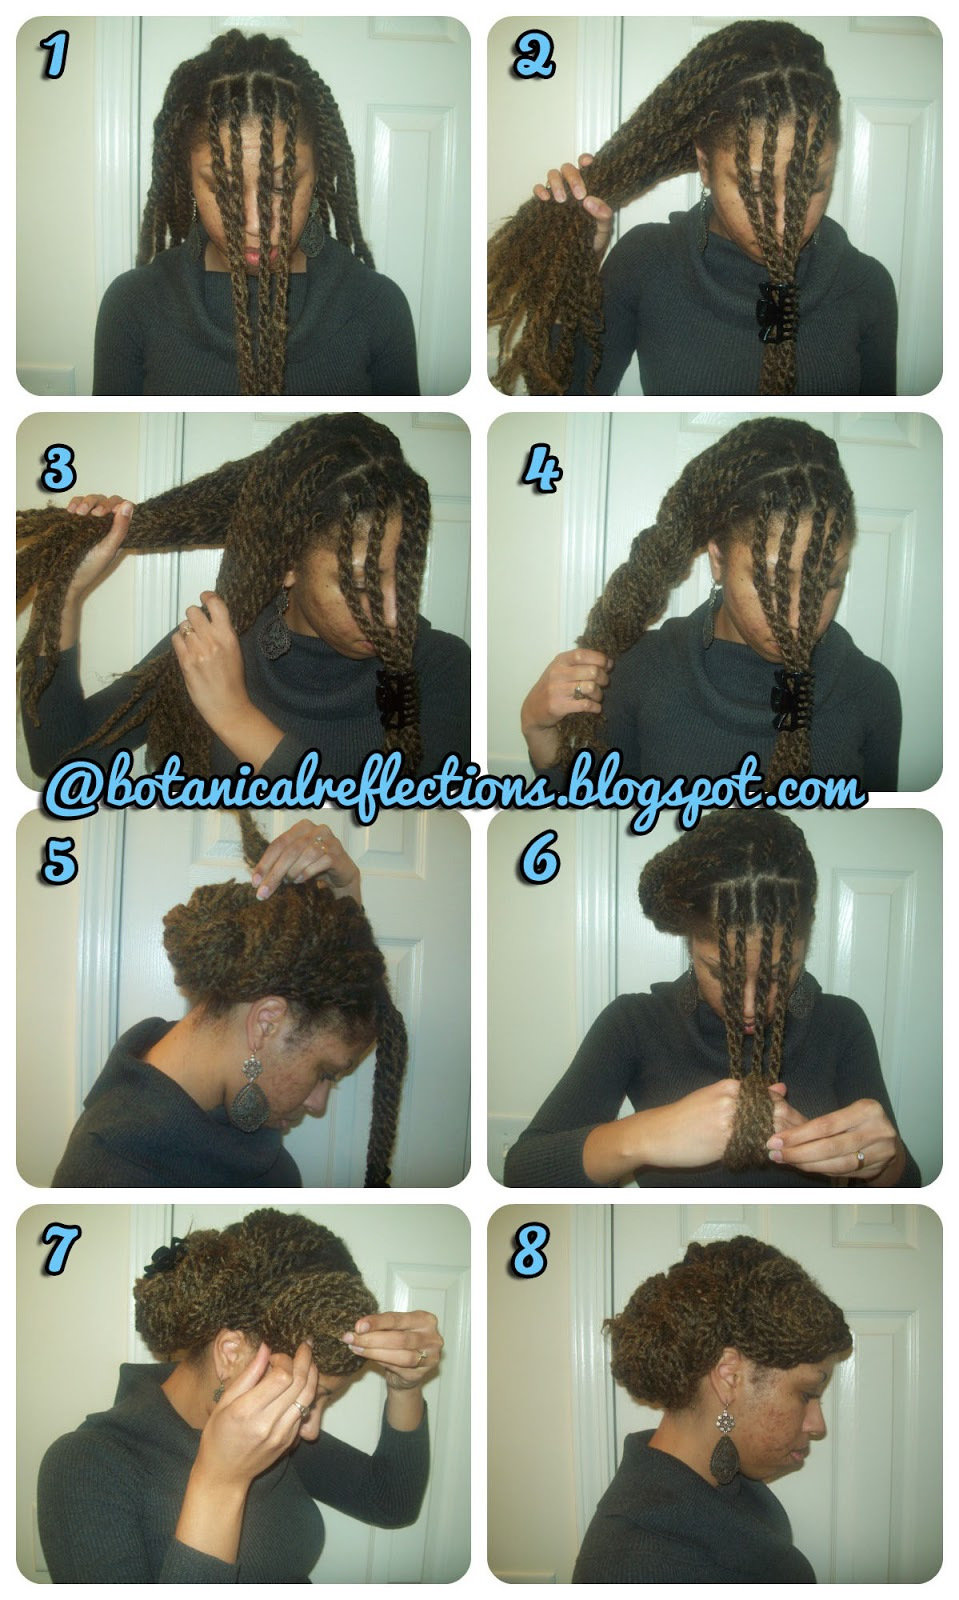 Pull four twists (or 50% of the front row of twists) to the front.